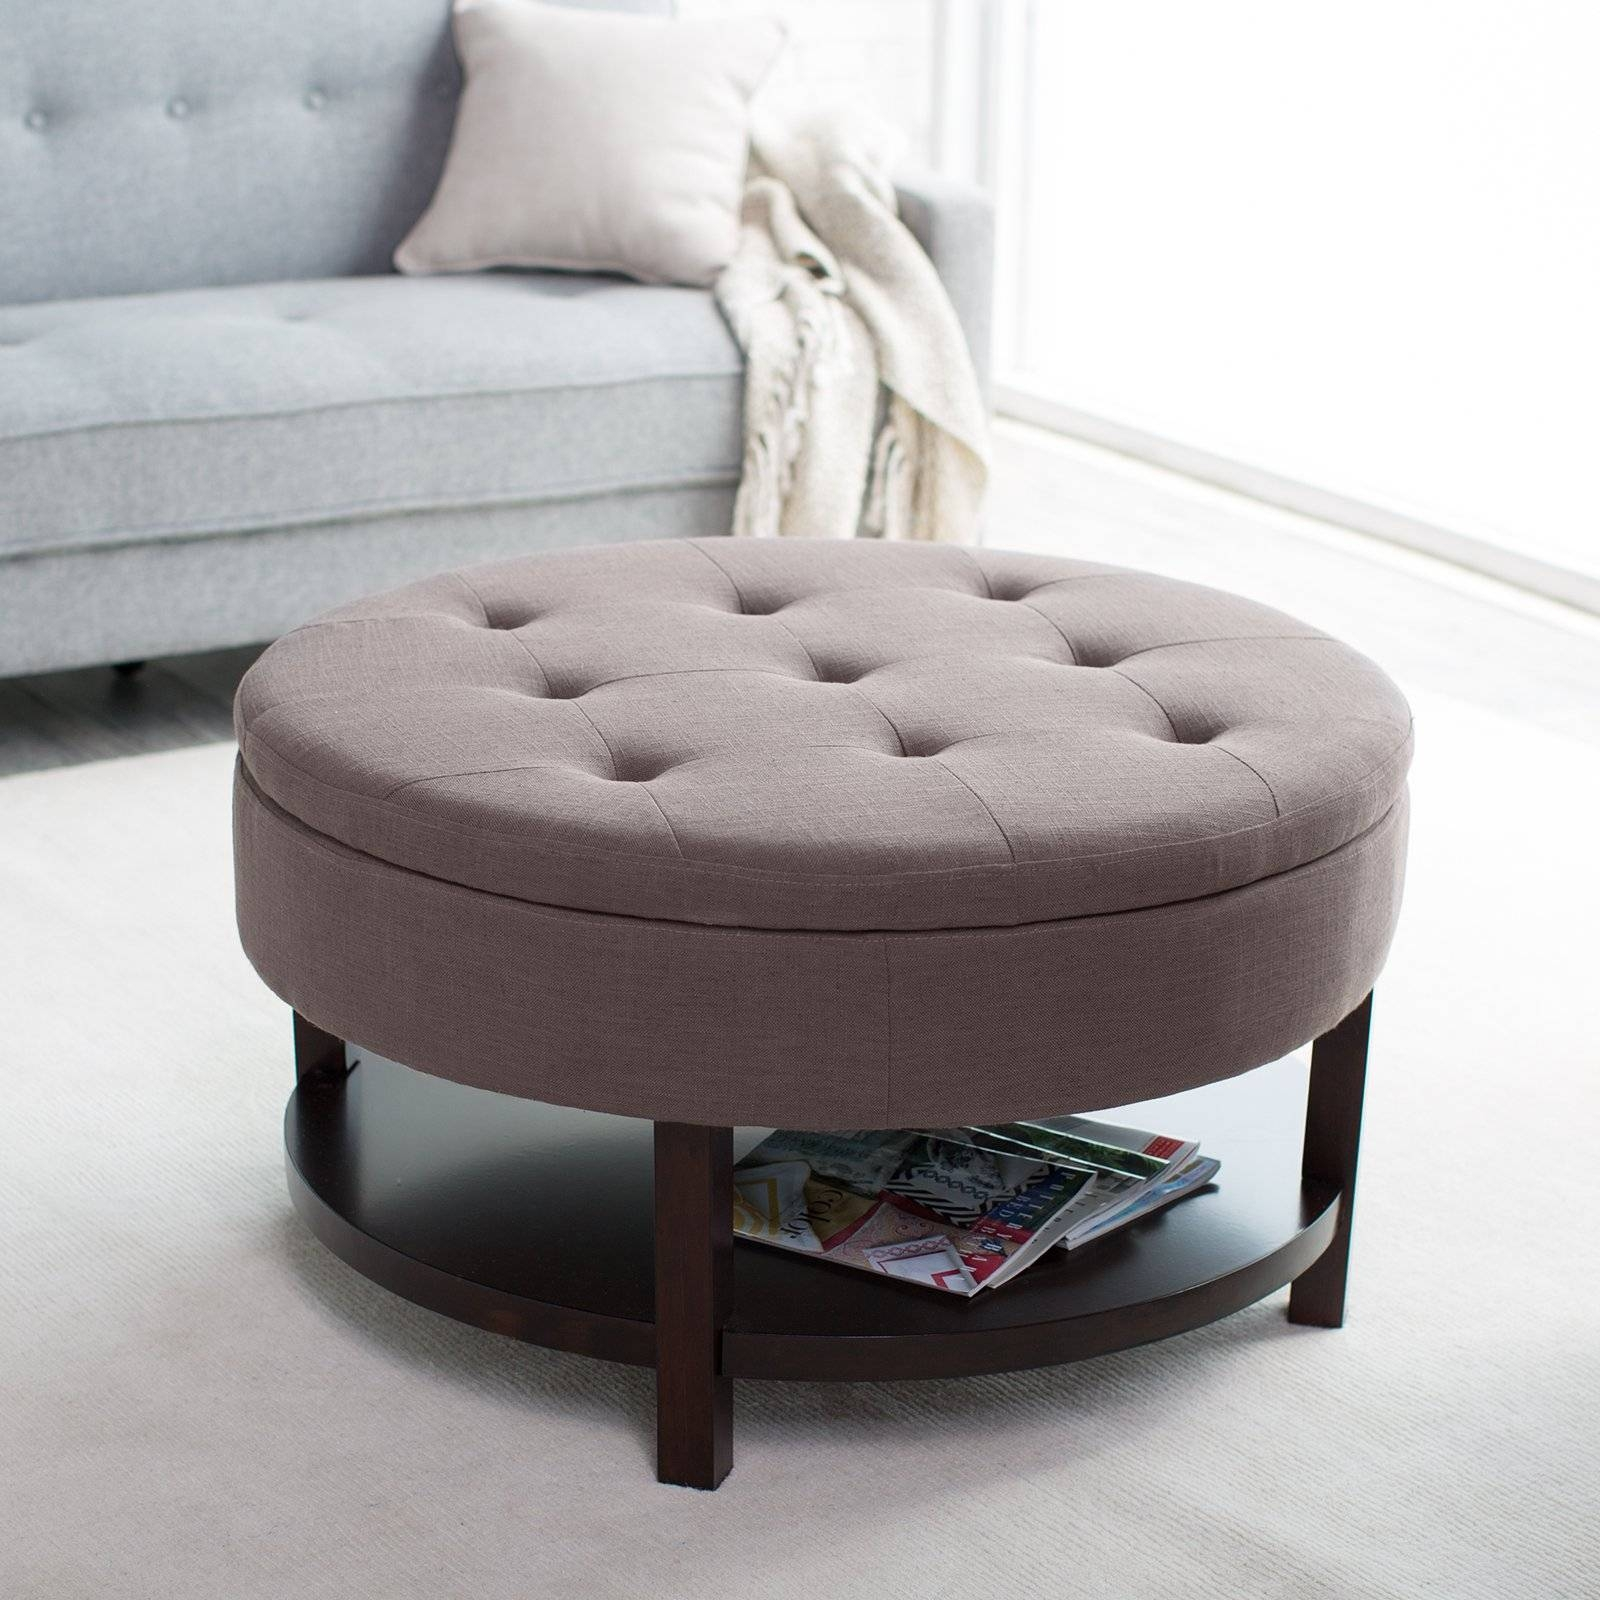 Coffee Table: Awesome Round Ottoman Coffee Table Upholstered Round Throughout Round Upholstered Coffee Tables (View 3 of 30)